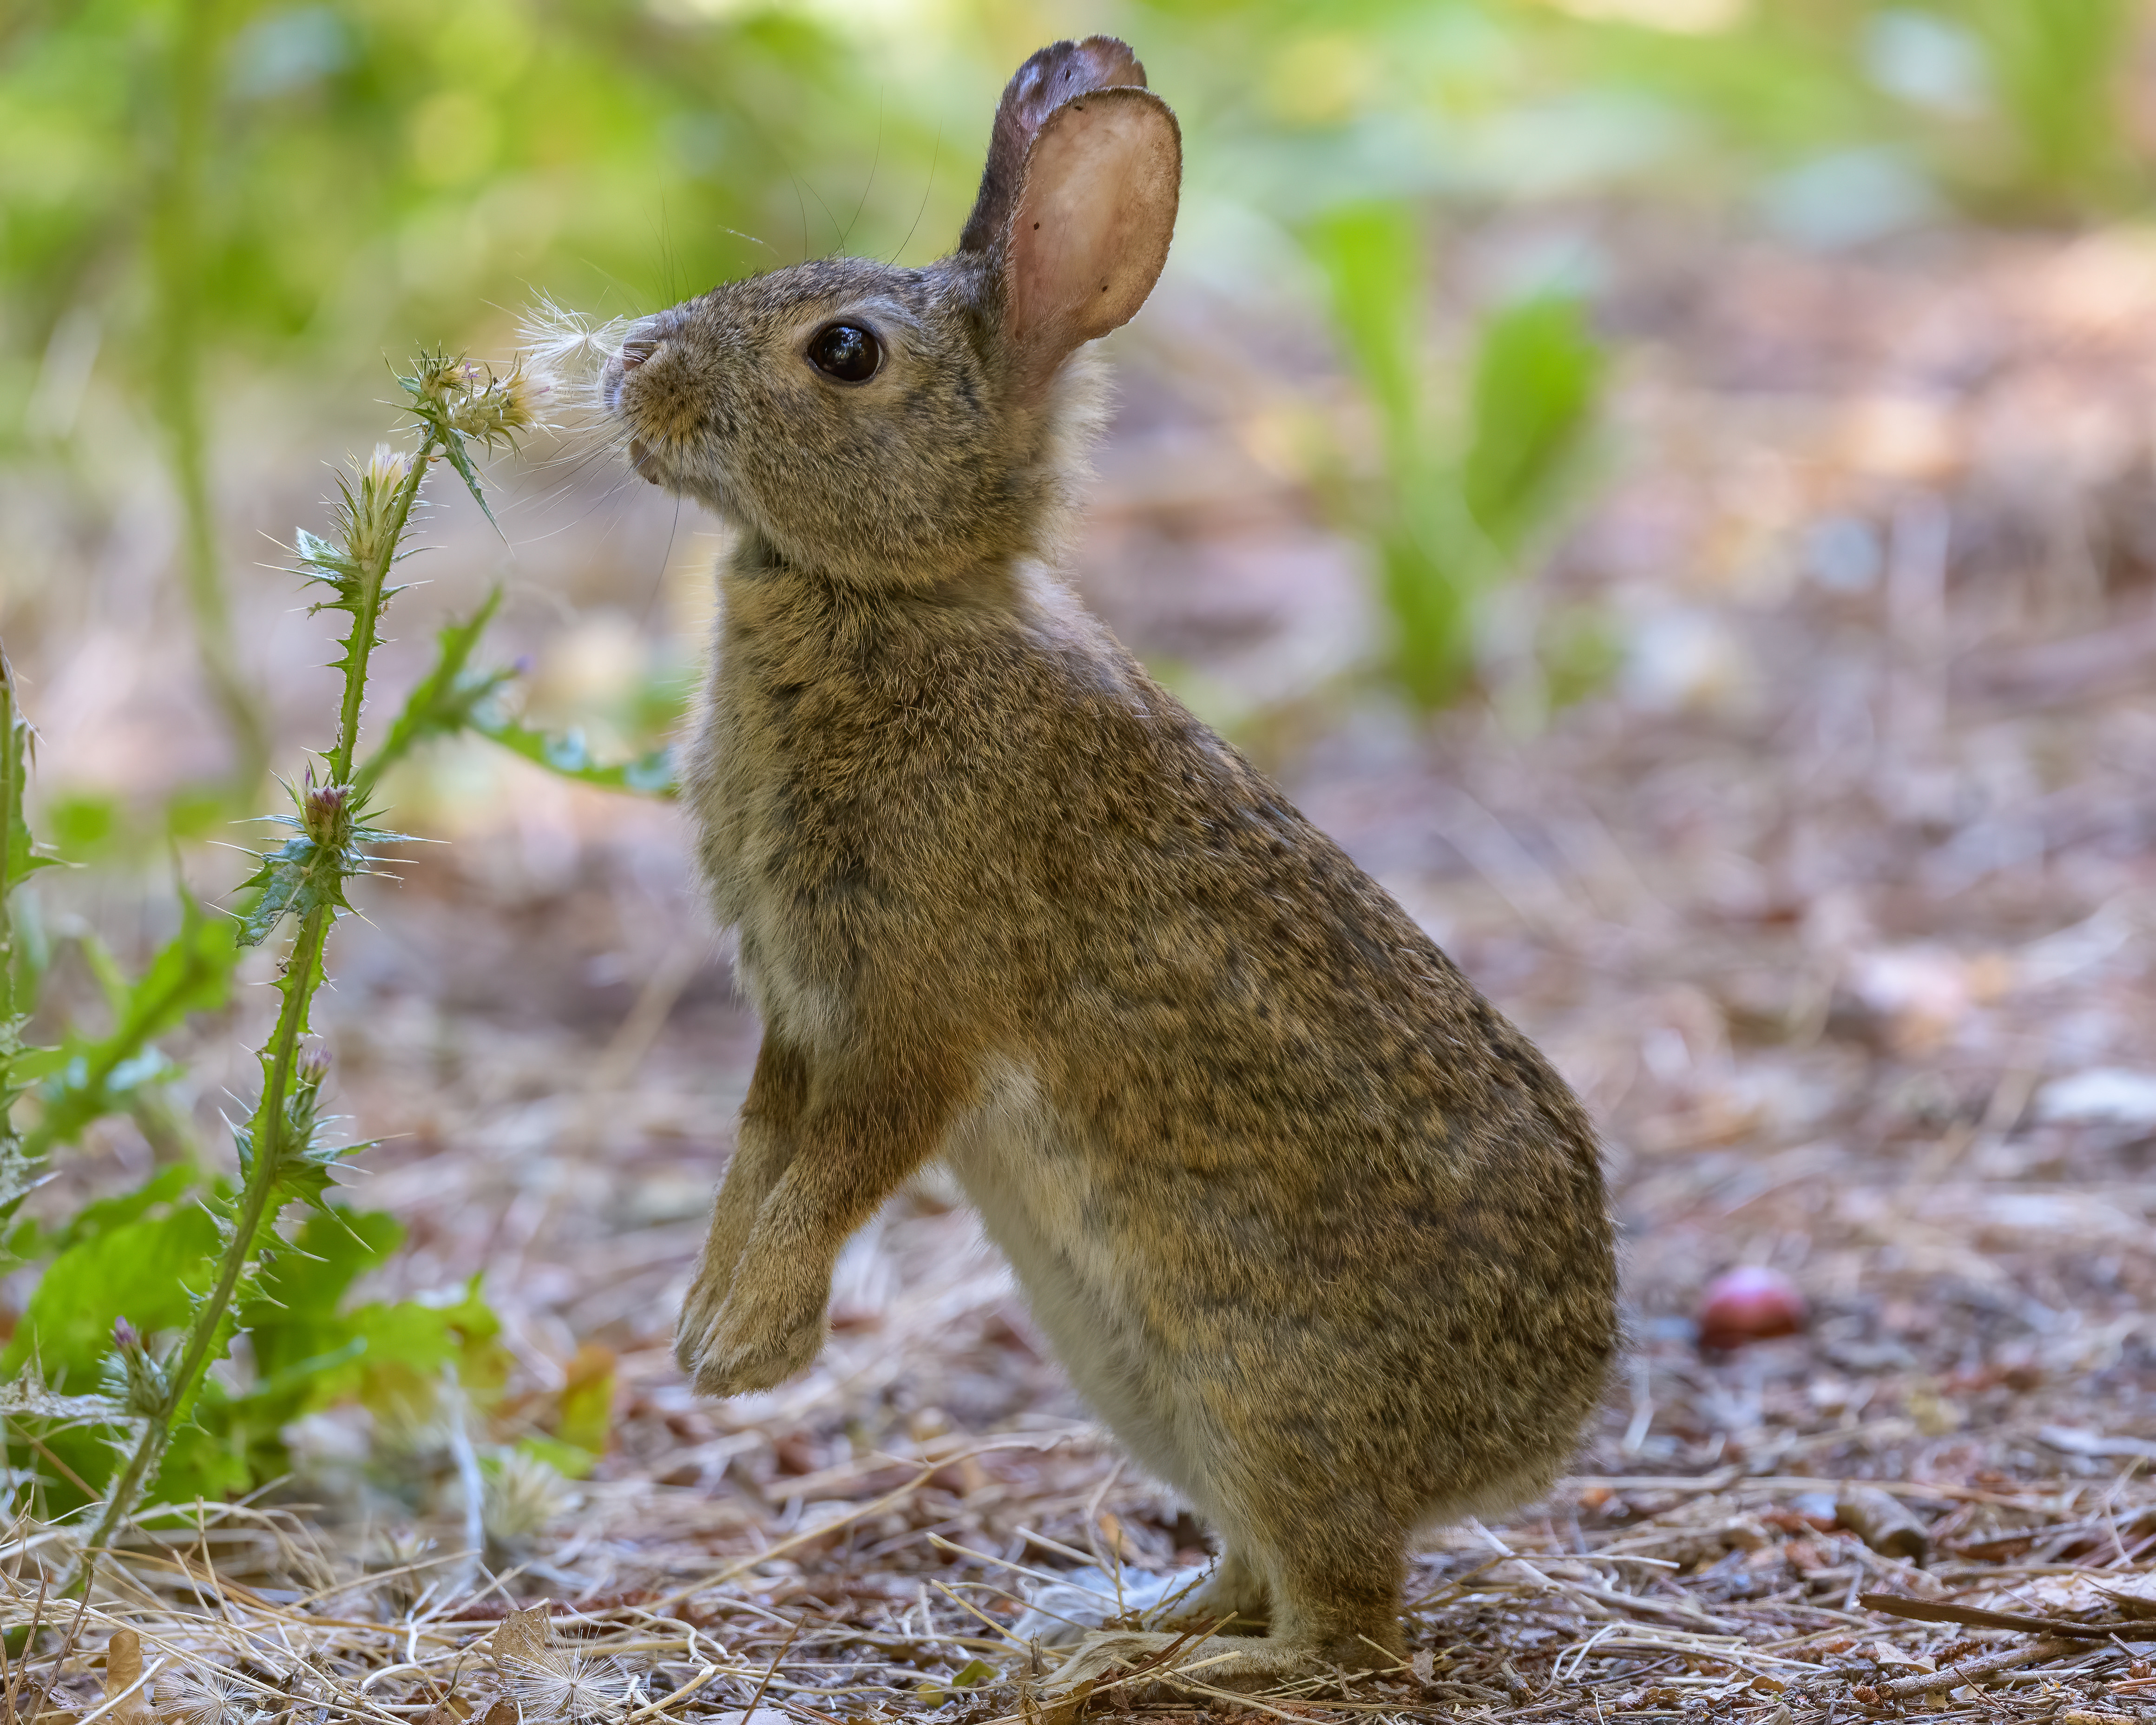 127361 download wallpaper Animals, Rabbit, Hare, Nice, Sweetheart, Profile, Fluff, Down screensavers and pictures for free